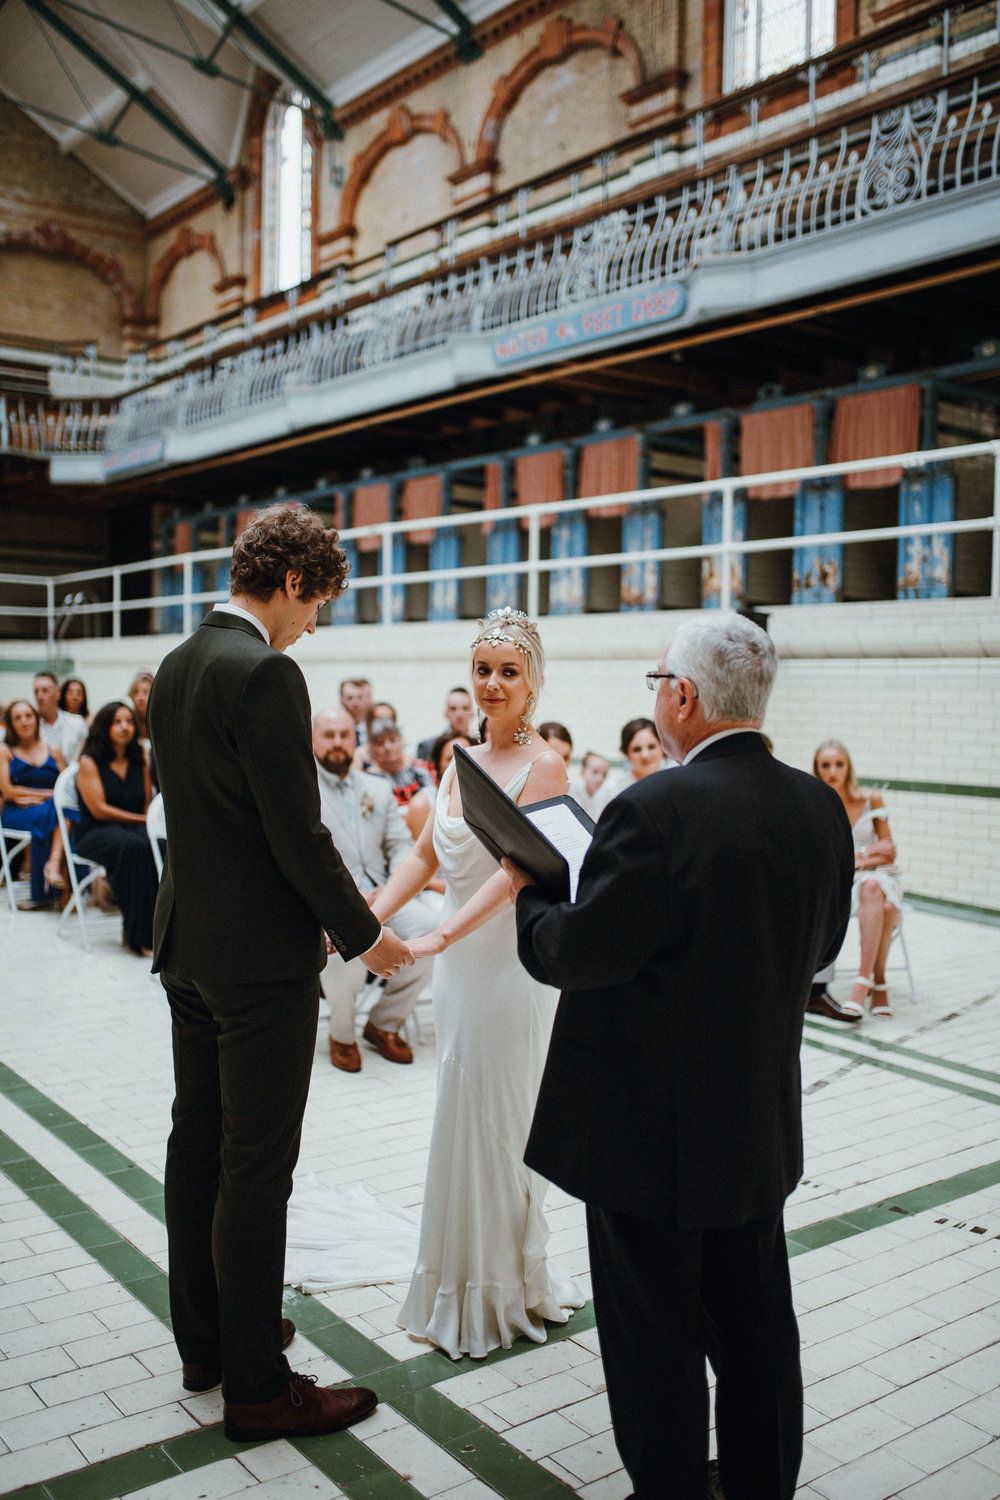 Ceremony at Victoria Baths